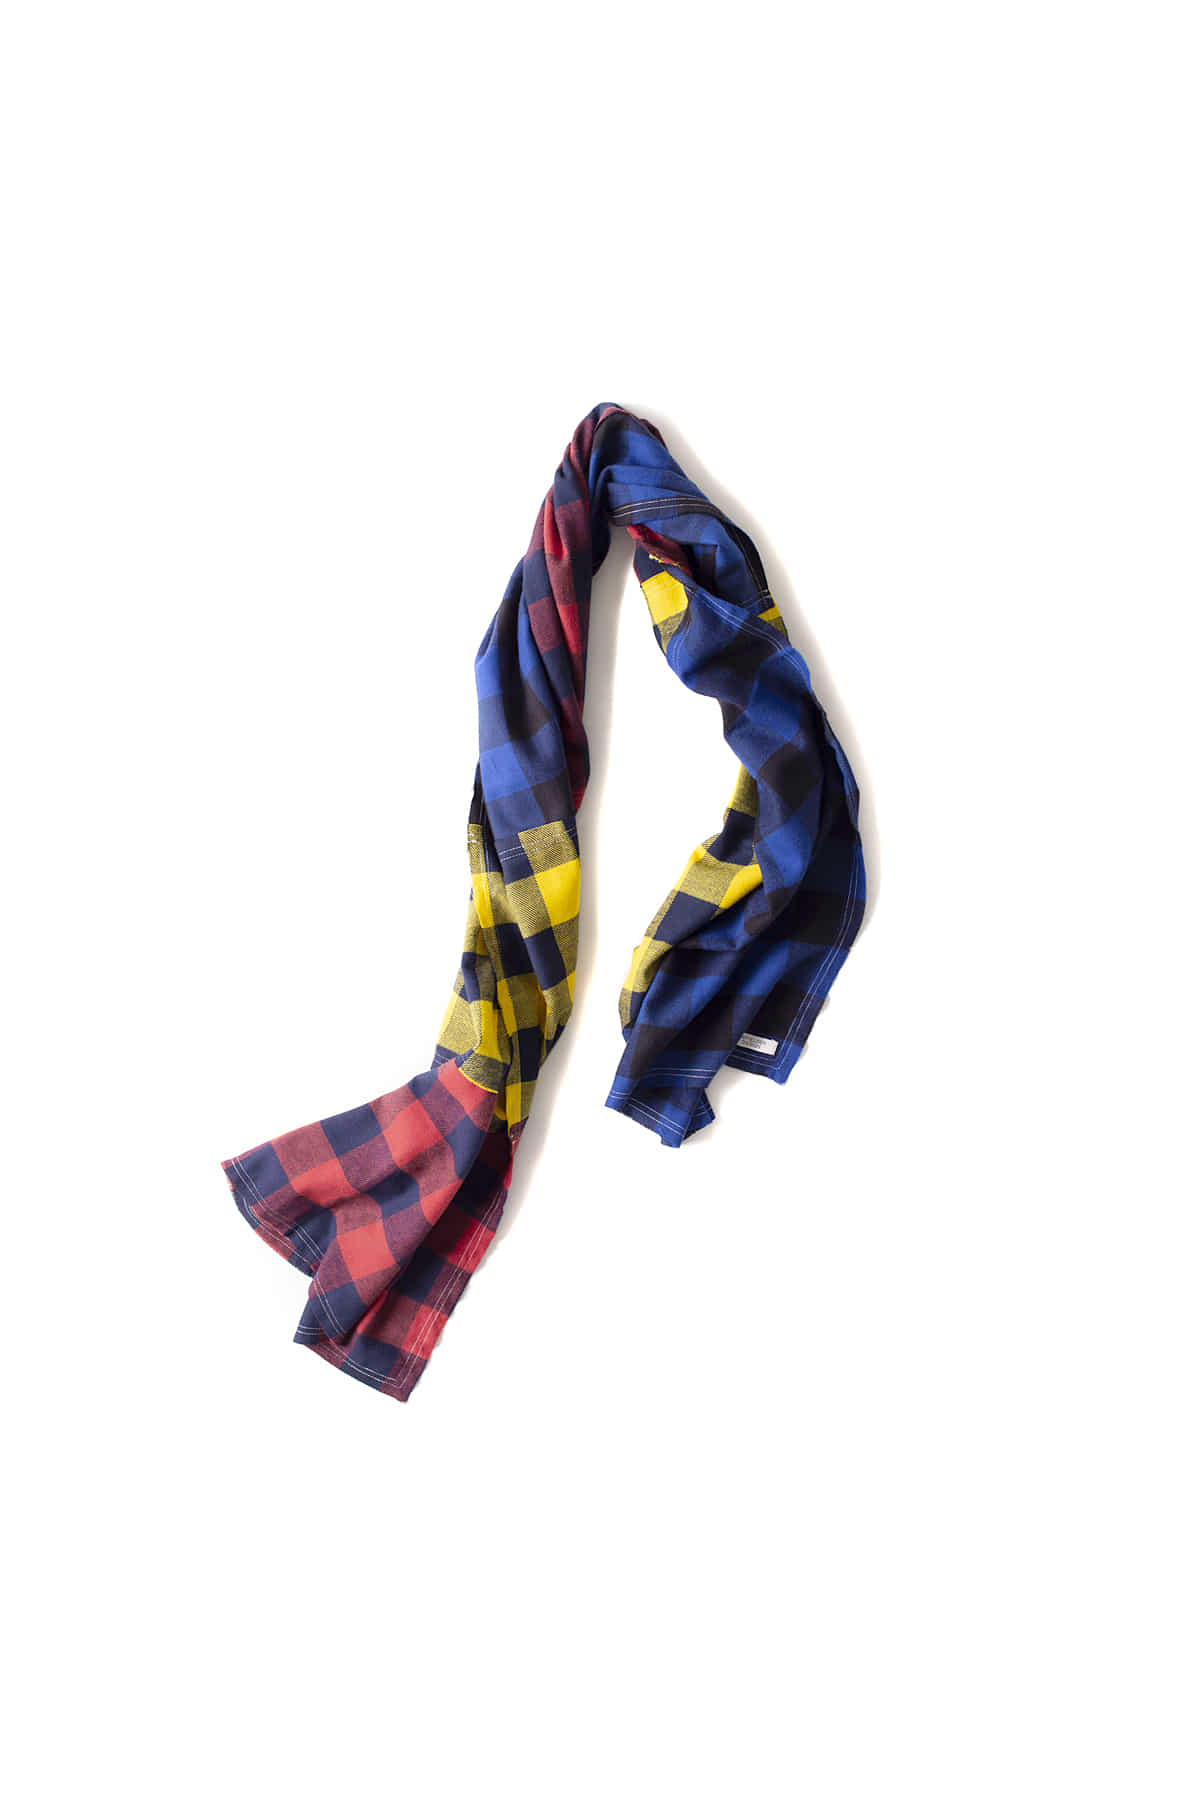 Infielder Design : Check Flannel Stall (Red / Blue / Yellow)